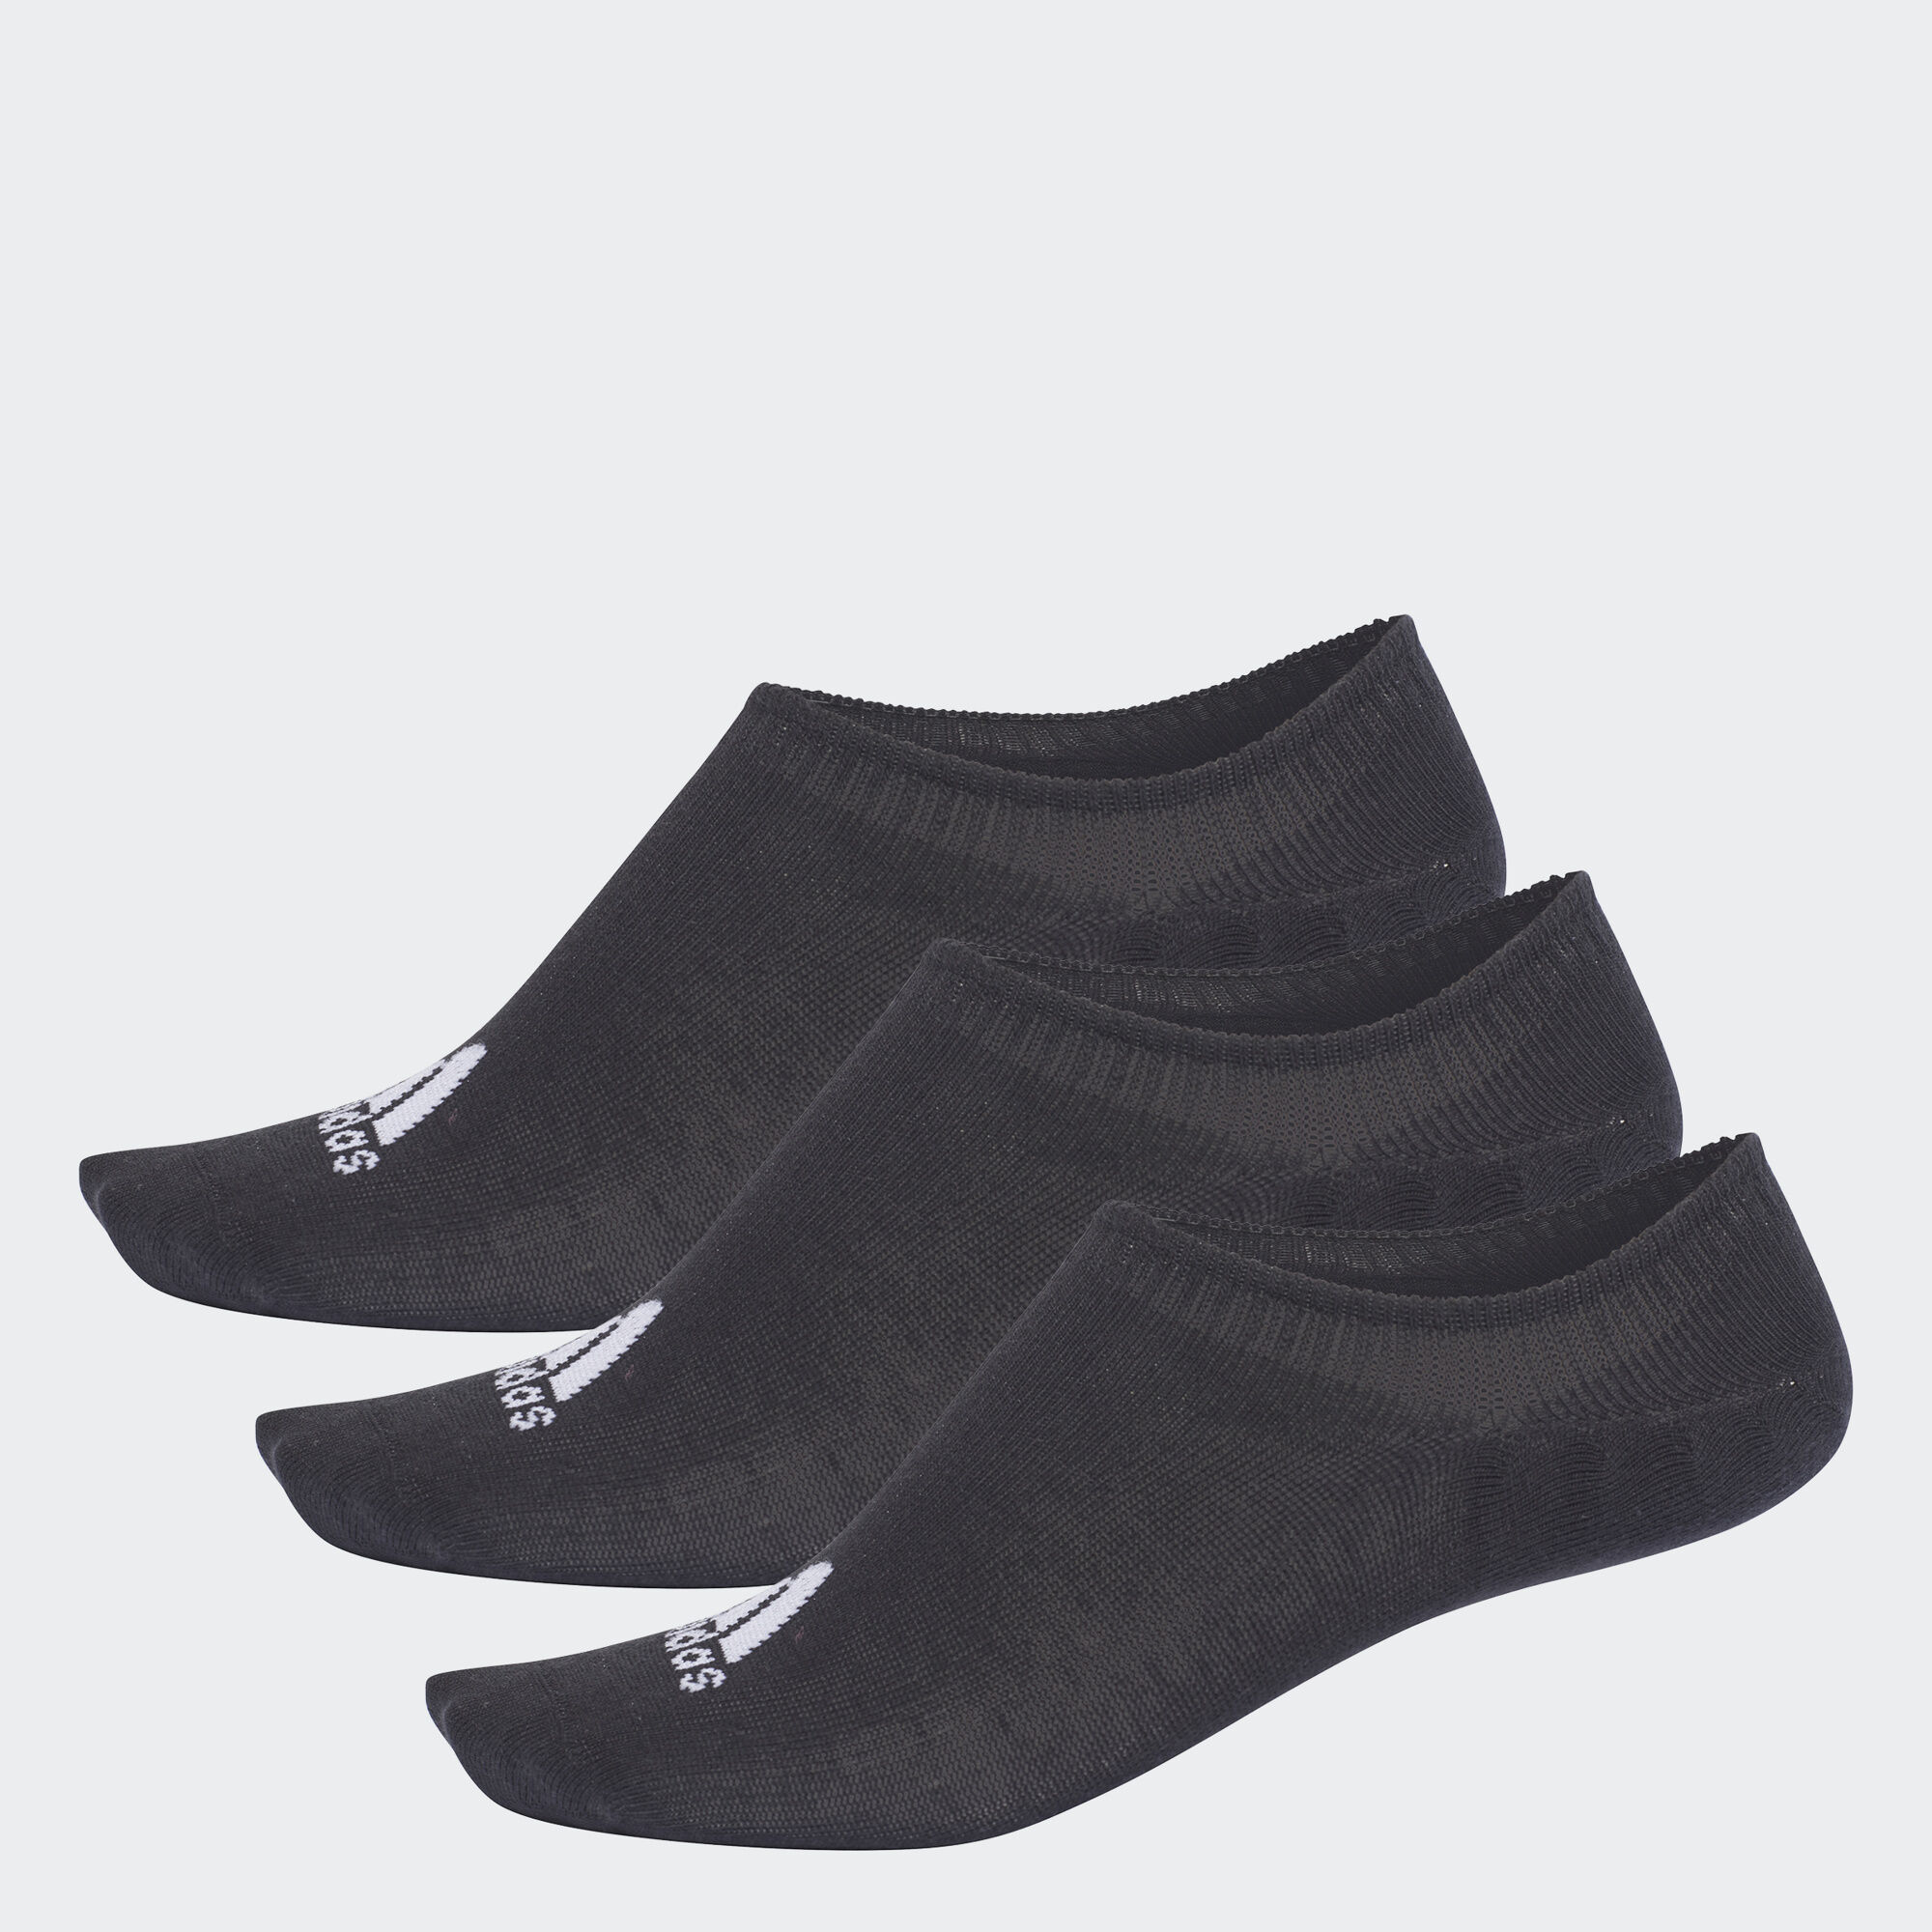 f7eda517a67f3 Performance Invisible Socks 3 Pairs